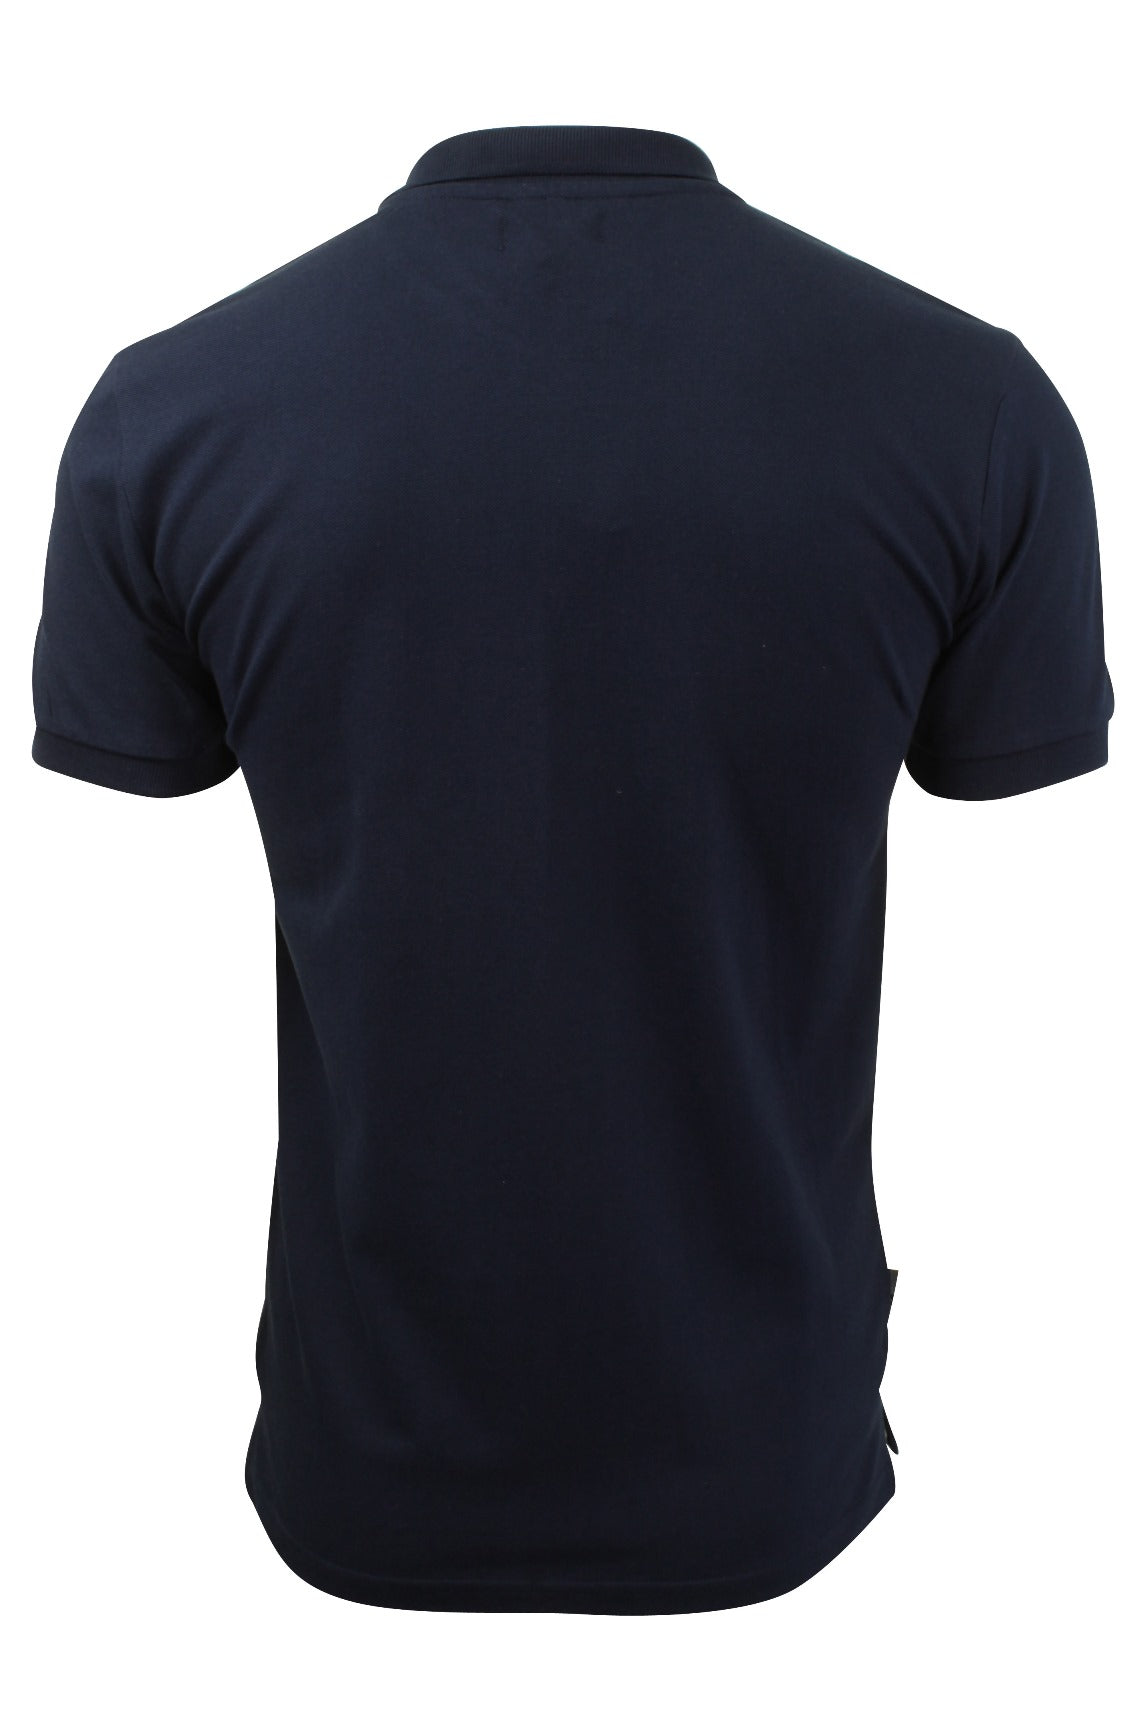 Mens Polo T-Shirt by Voi Jeans 'Redford' Short Sleeved-3